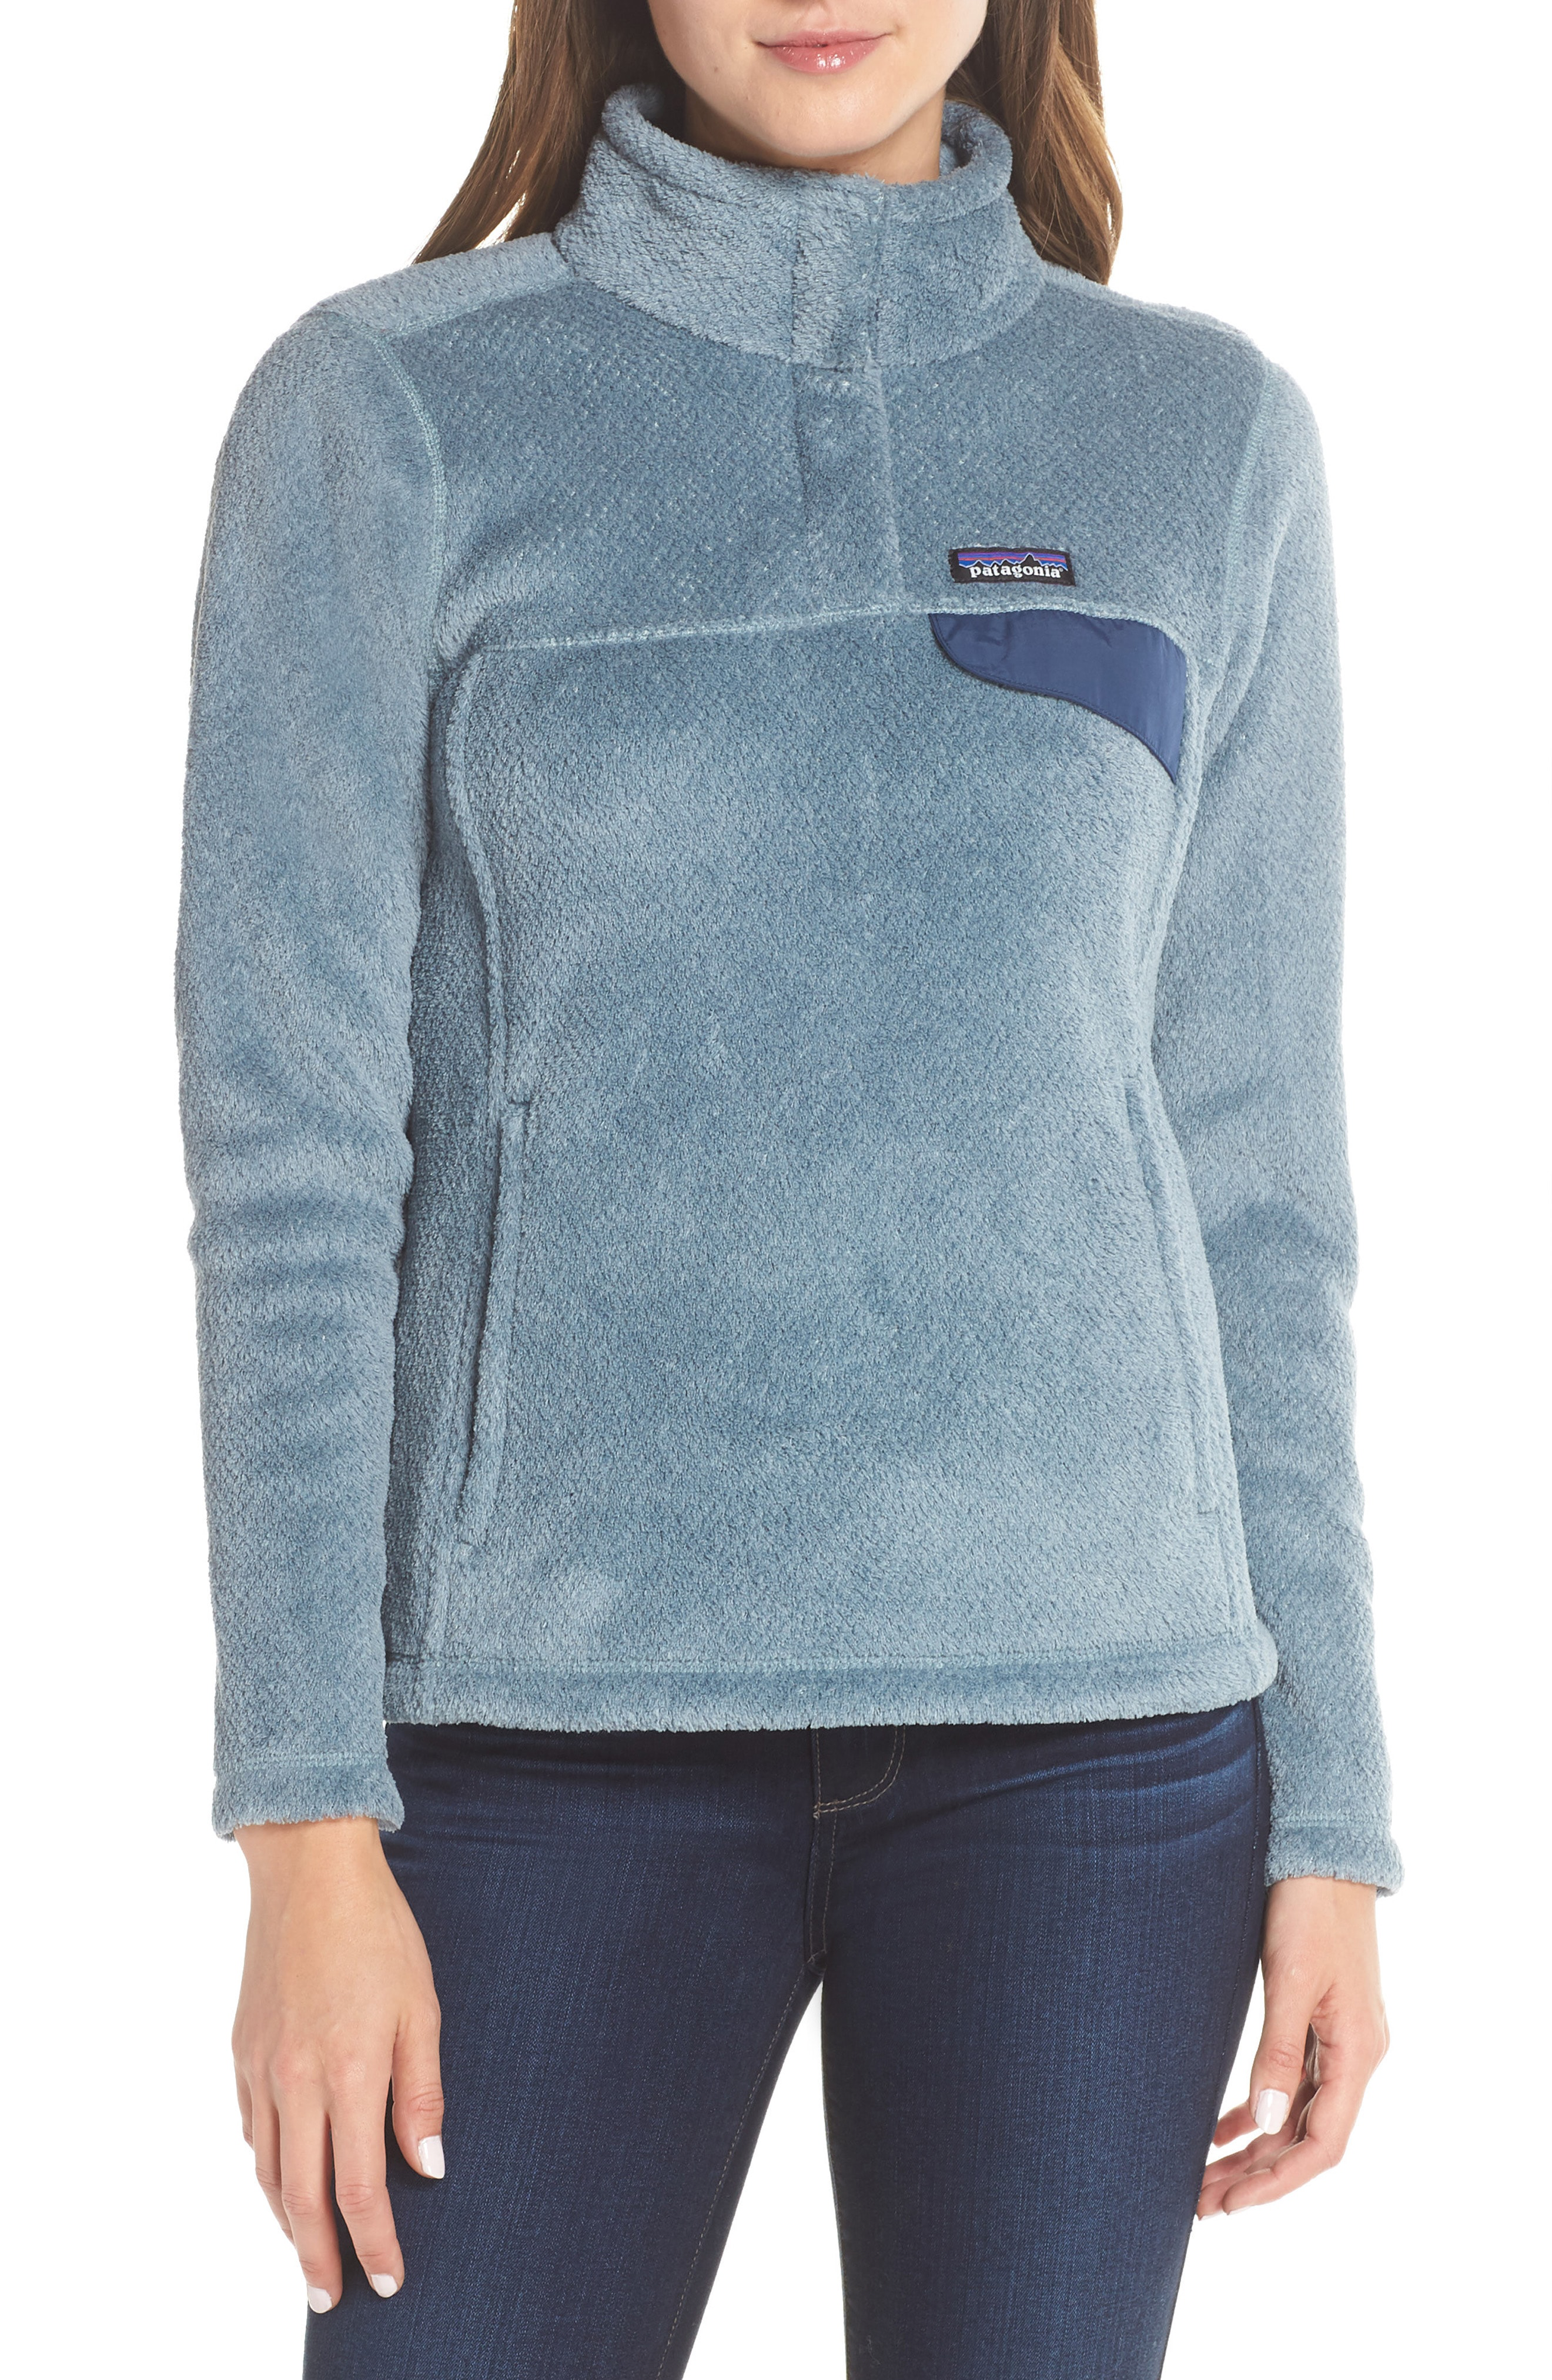 Patagonia Re-Tool Snap-T Fleece Pullover In Shadow Blue - Cadet Blue X-Dye